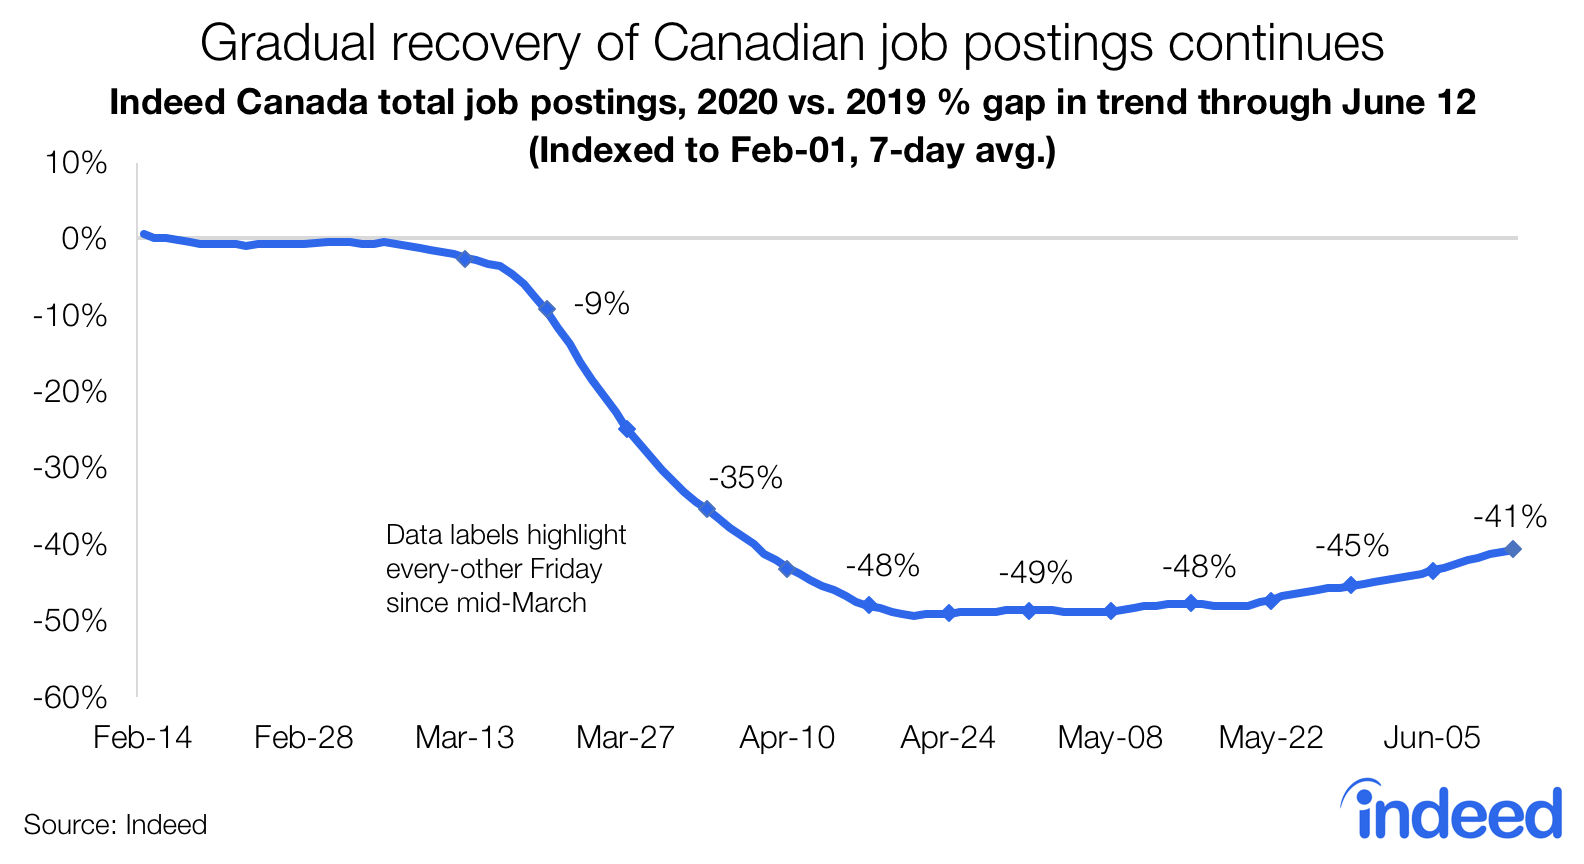 gradual recovery of canadian job postings continues